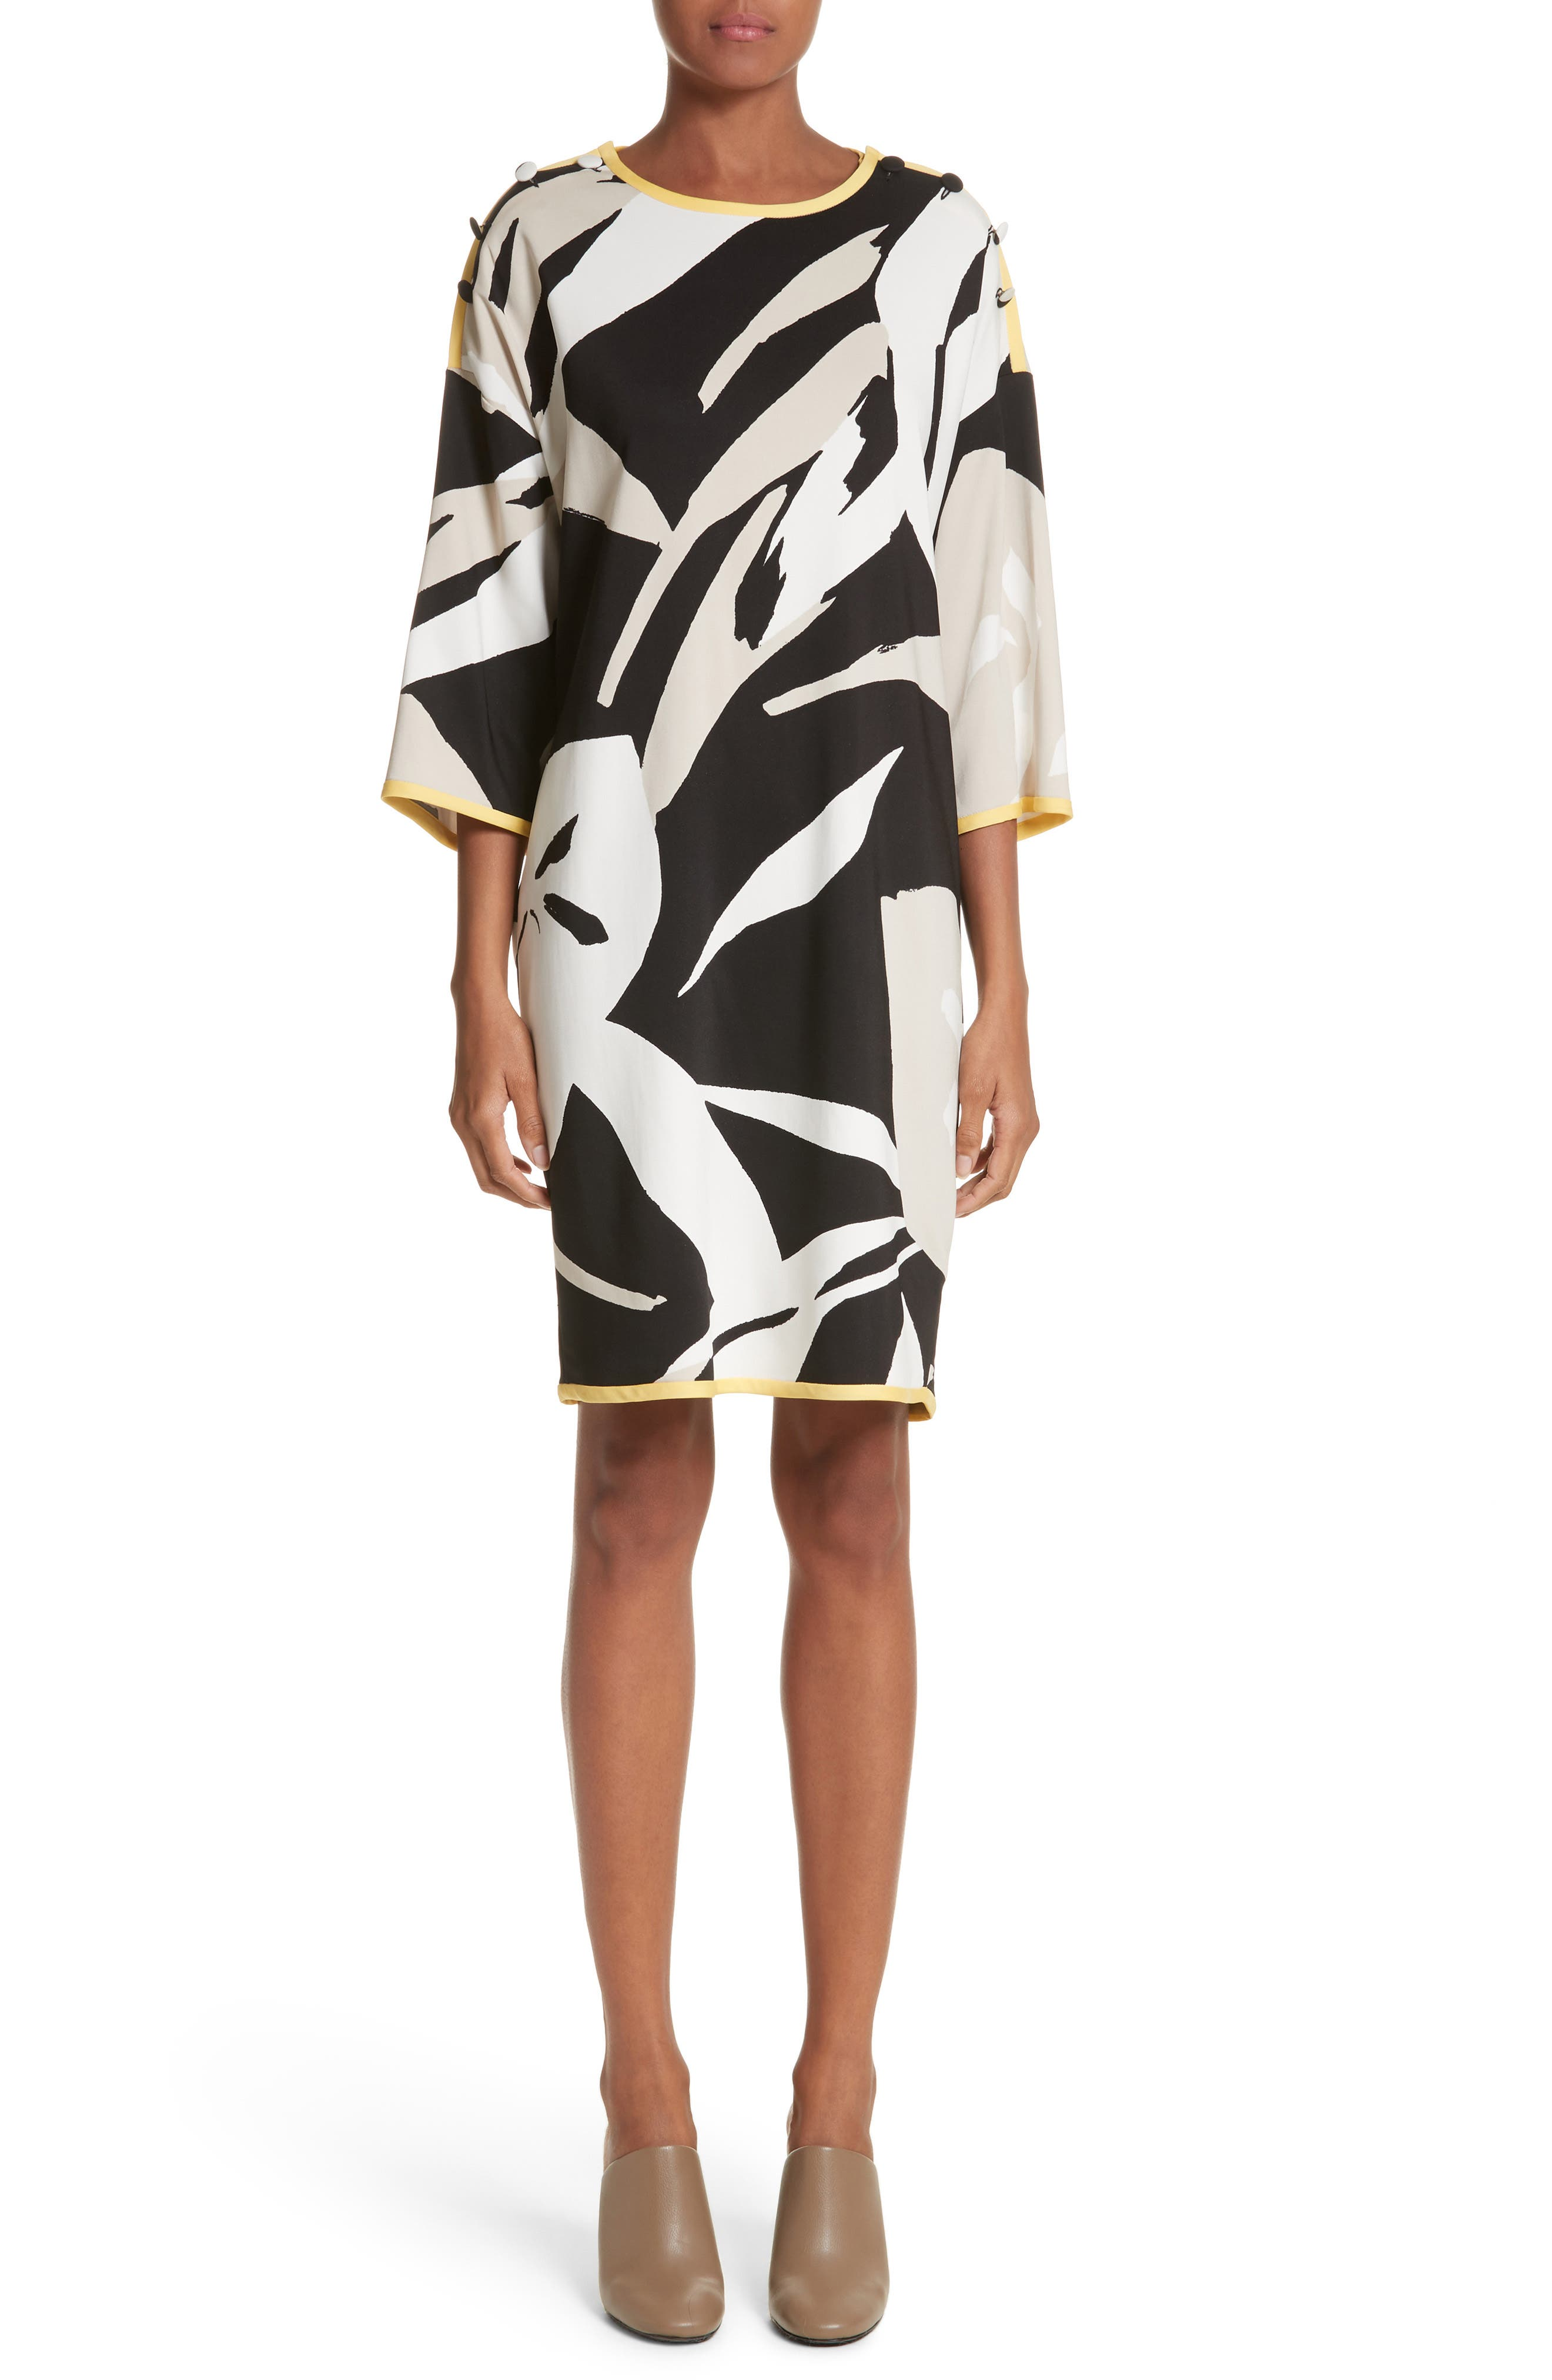 Leva Print Shift Dress,                             Main thumbnail 1, color,                             Black